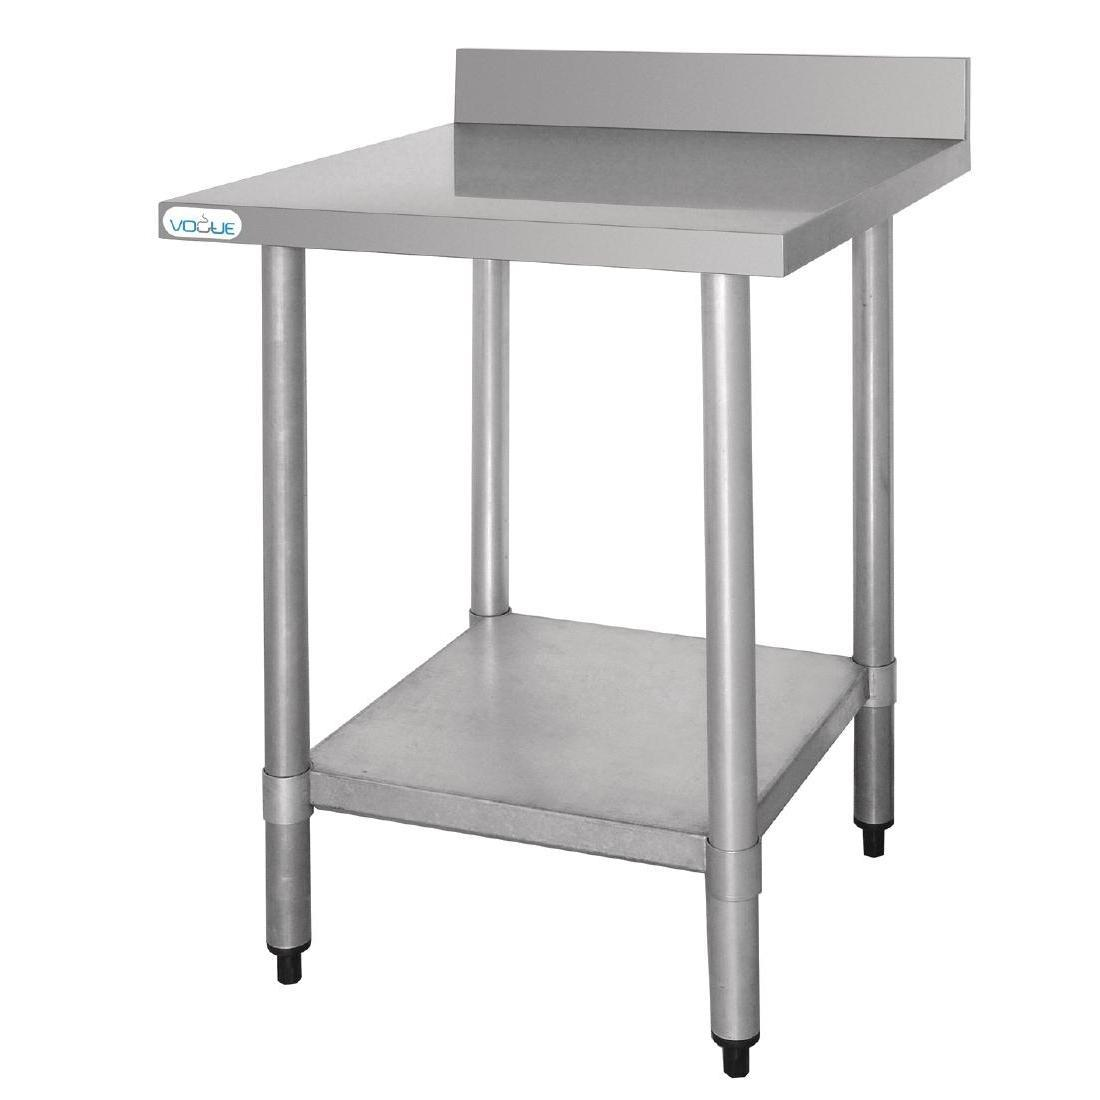 Vogue Stainless Steel Prep Table with Upstand 900mm - T380